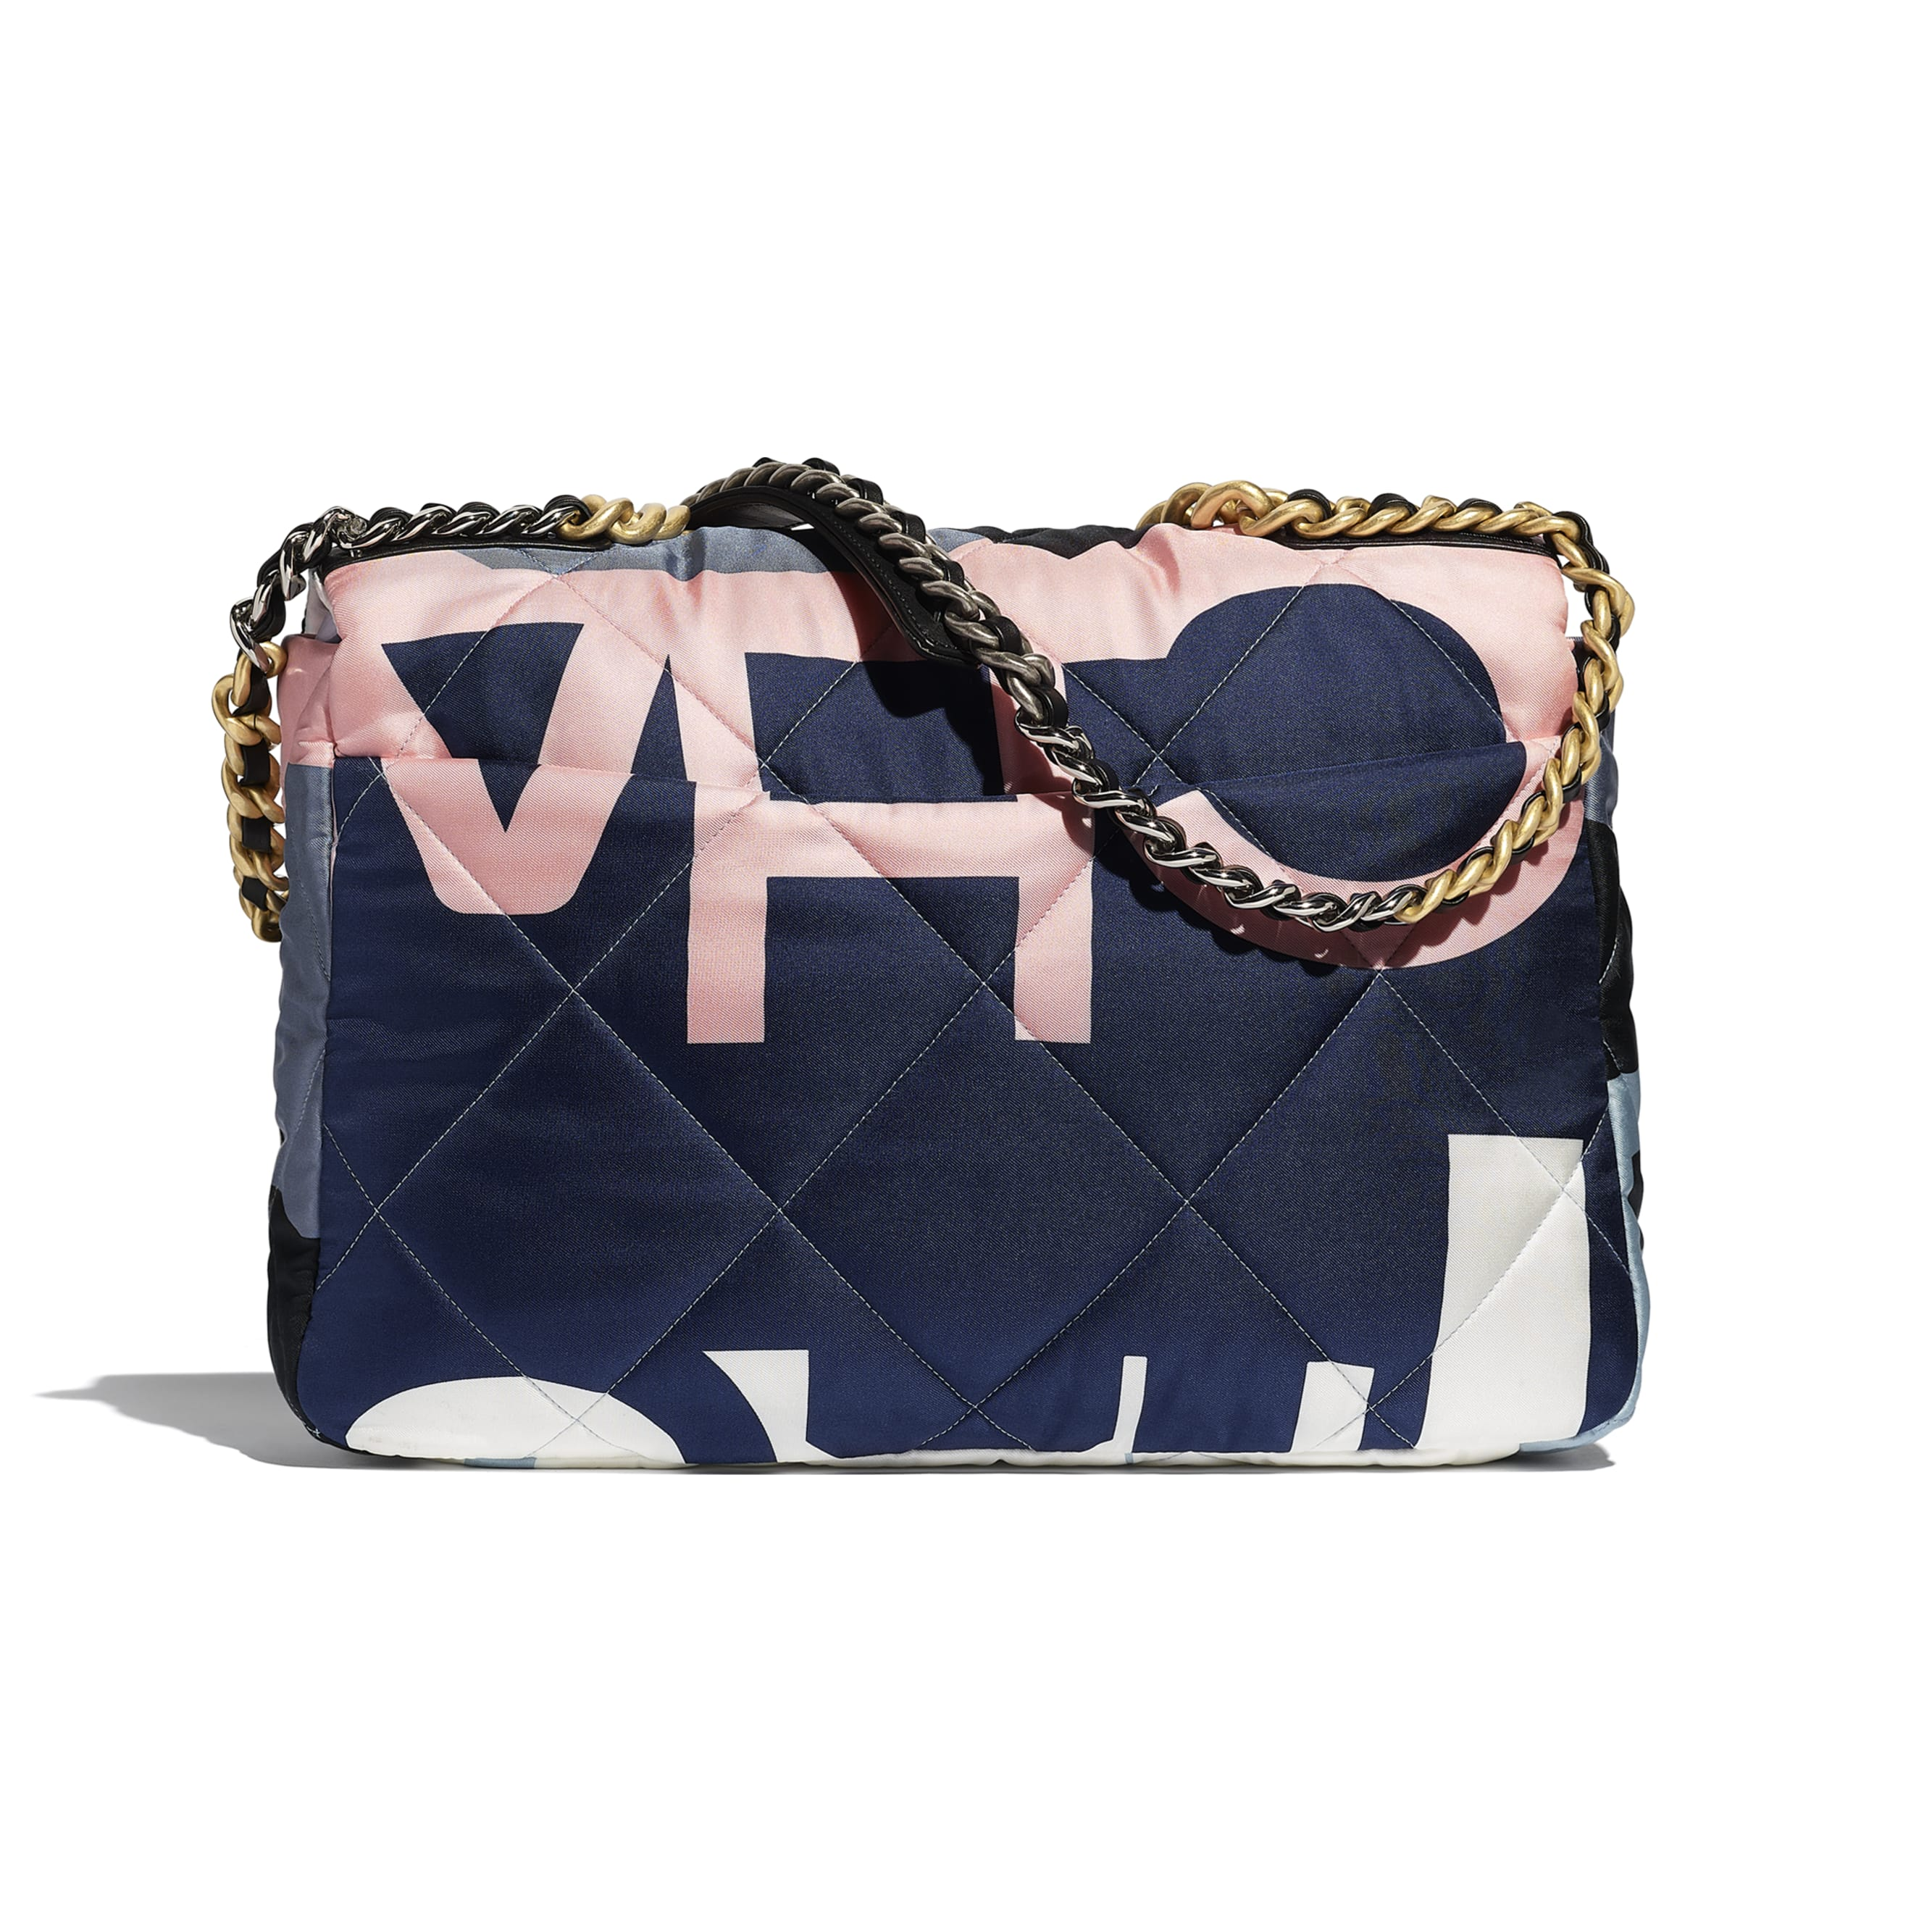 CHANEL 19 Maxi Flap Bag - Black, Blue, Pink & White - Printed Silk, Gold-Tone, Silver-Tone & Ruthenium-Finish Metal - Alternative view - see standard sized version